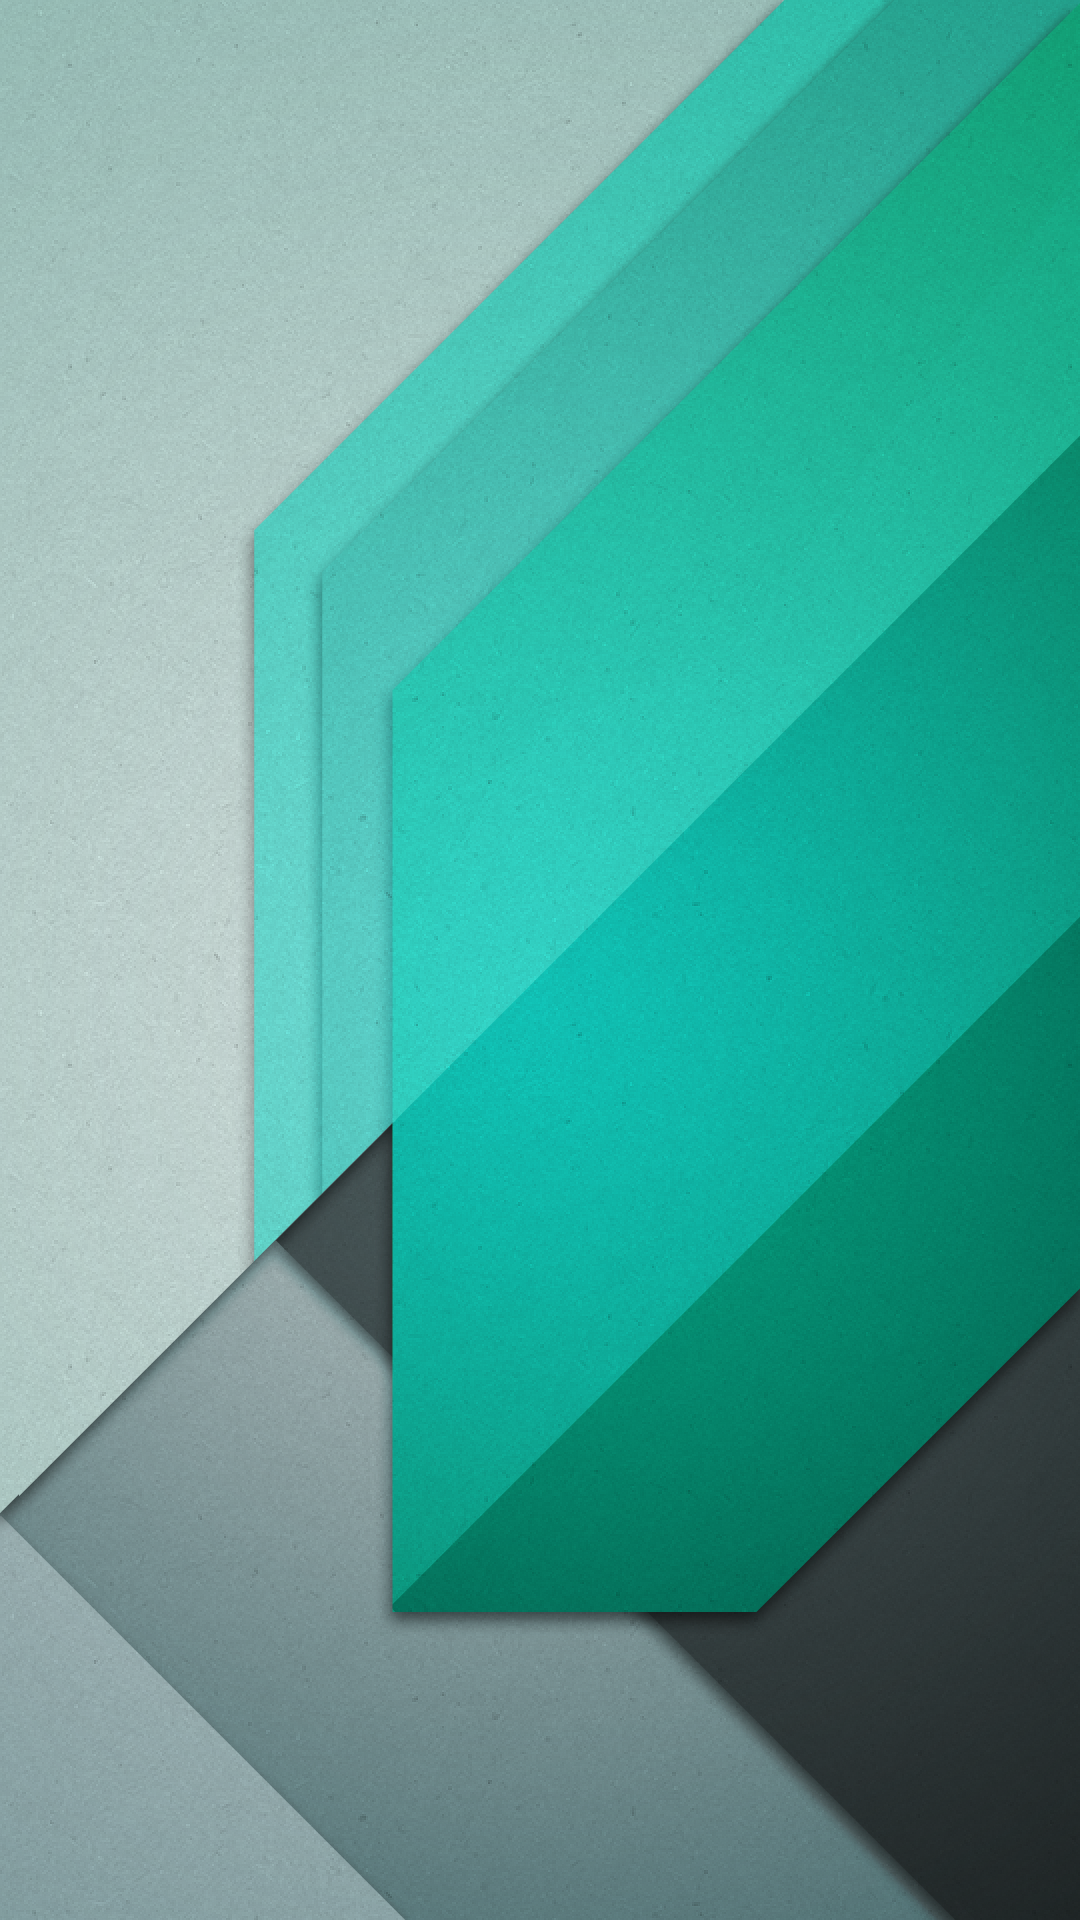 Hd wallpaper xda - Abo Hani Android 6 0 Marshmallow Inspired Wallpapers Collection